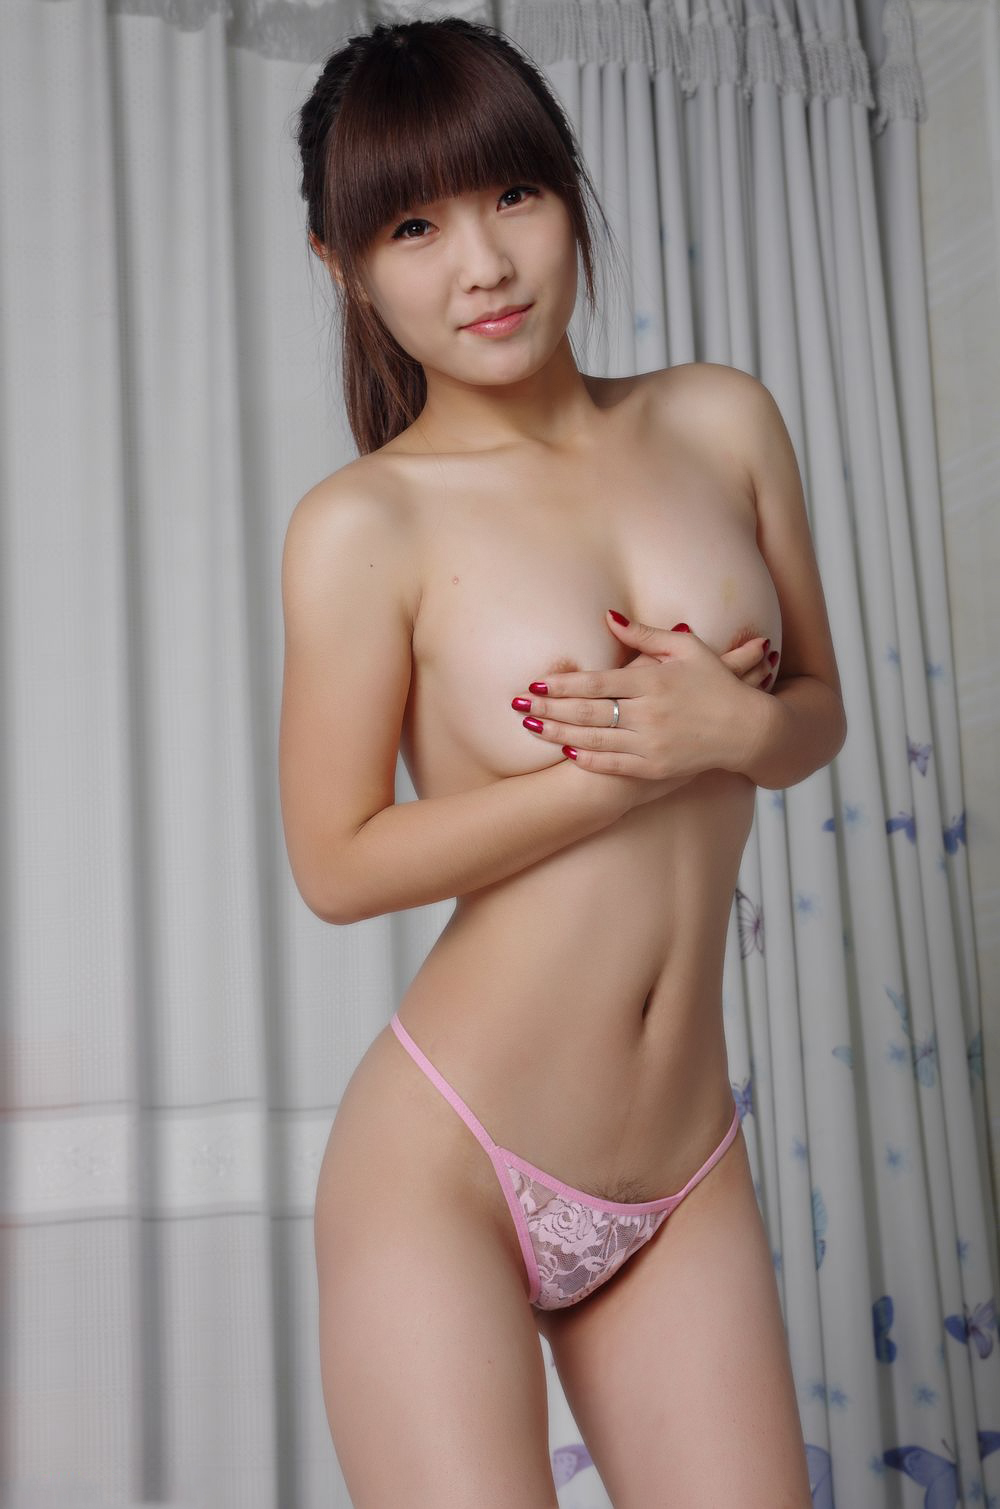 Hot Busty Naughty Asian Girls, Hot Naughty Asian Girls 65-3166